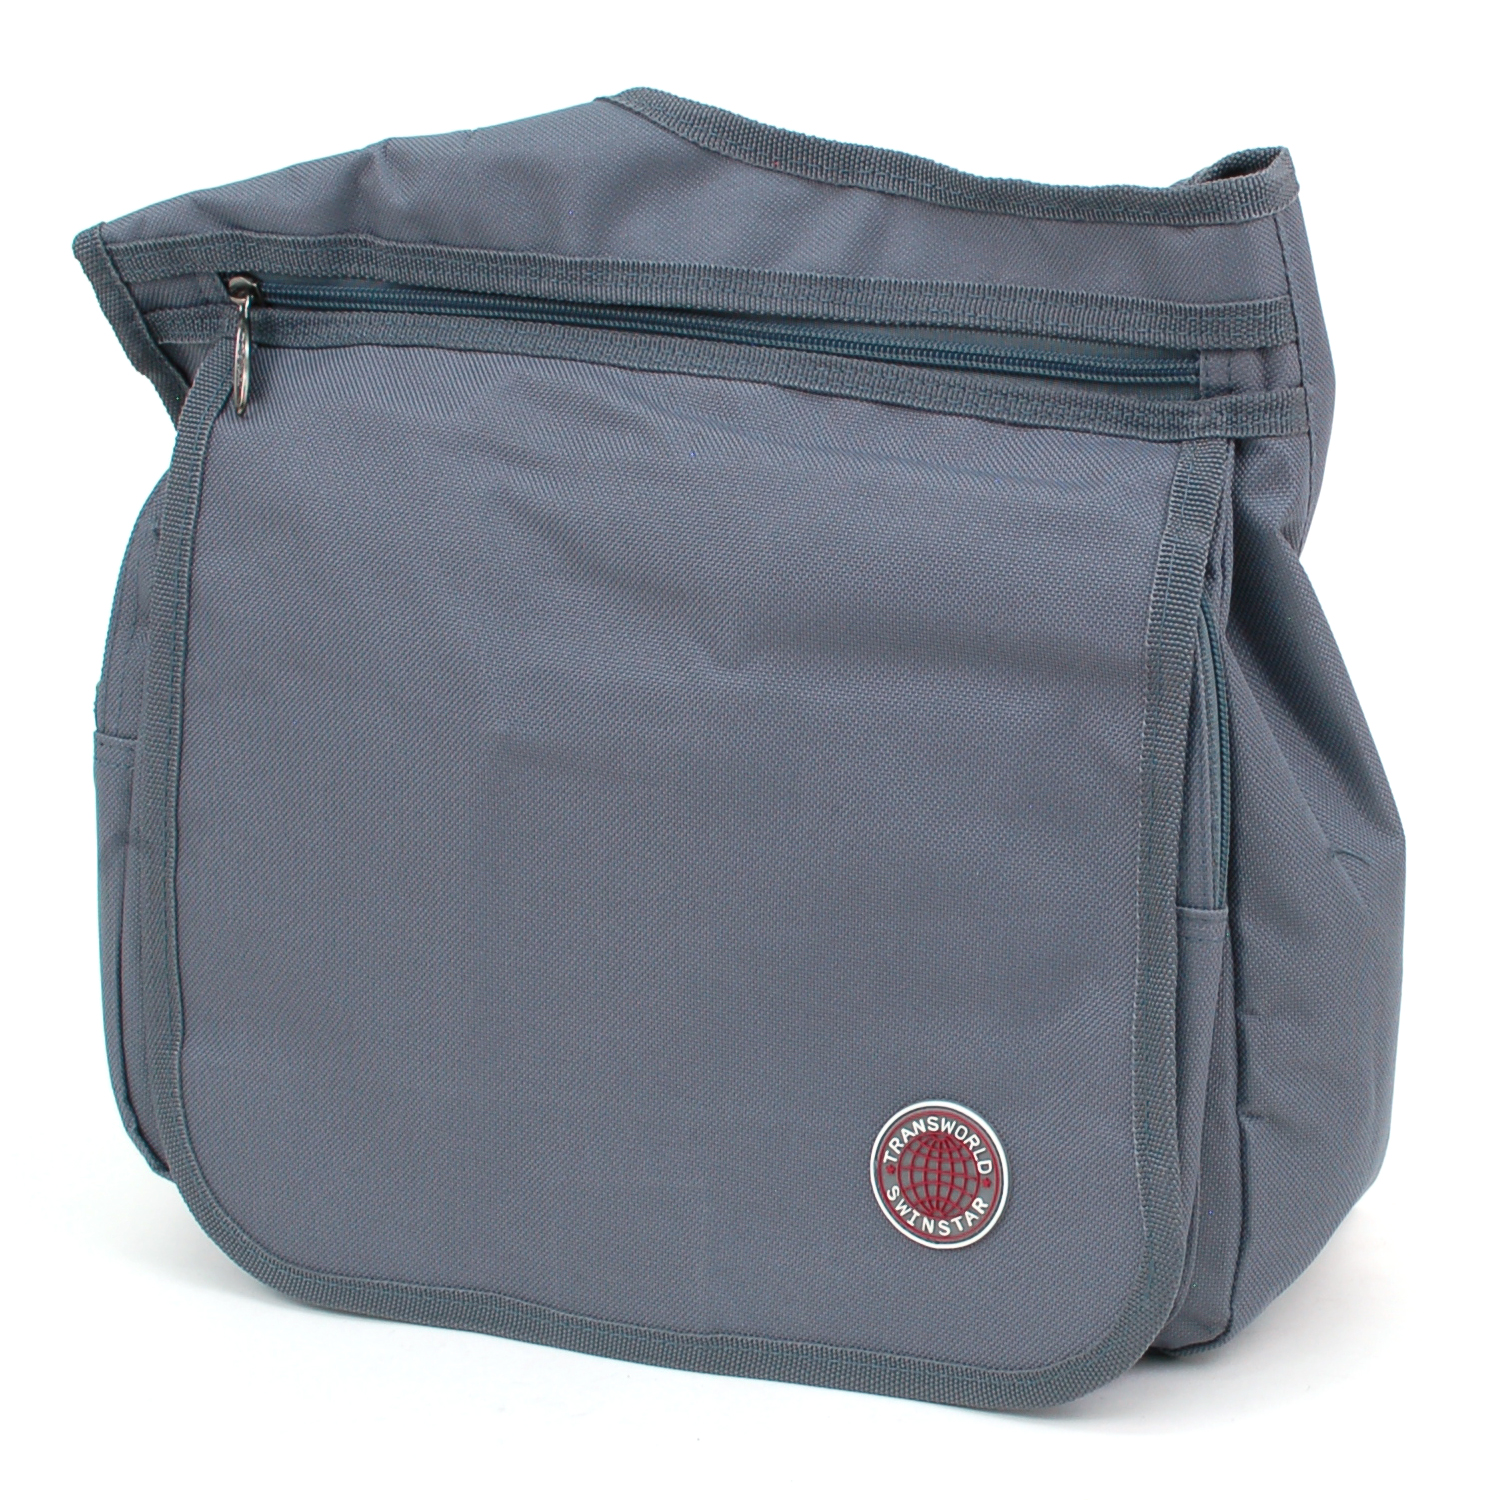 Messenger Bag Cross Body Organizer Briefcase Medium Size Multiple Pockets Purse Gray One Size